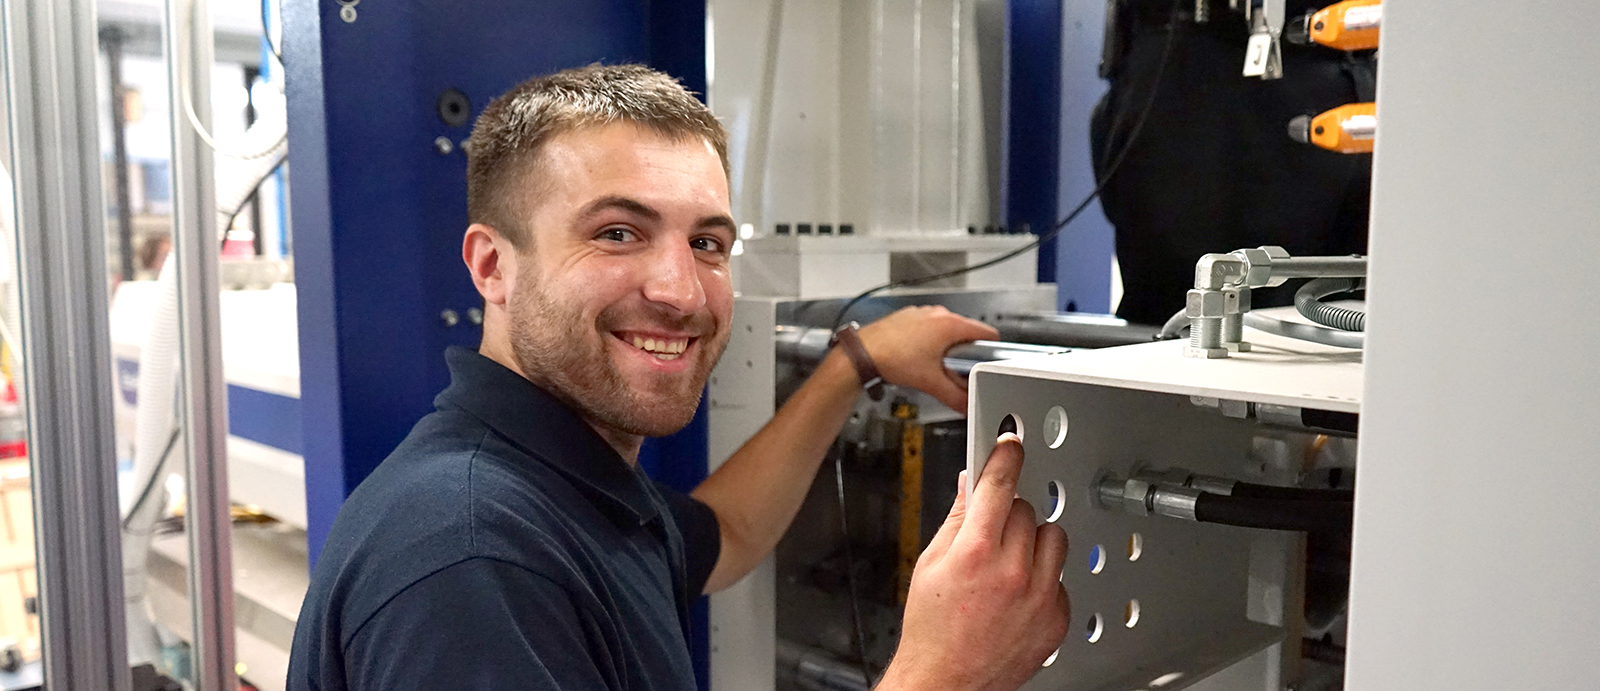 UMass Lowell Plastics Engineering student Patrick McCallum interns at Wittmann Battenfeld